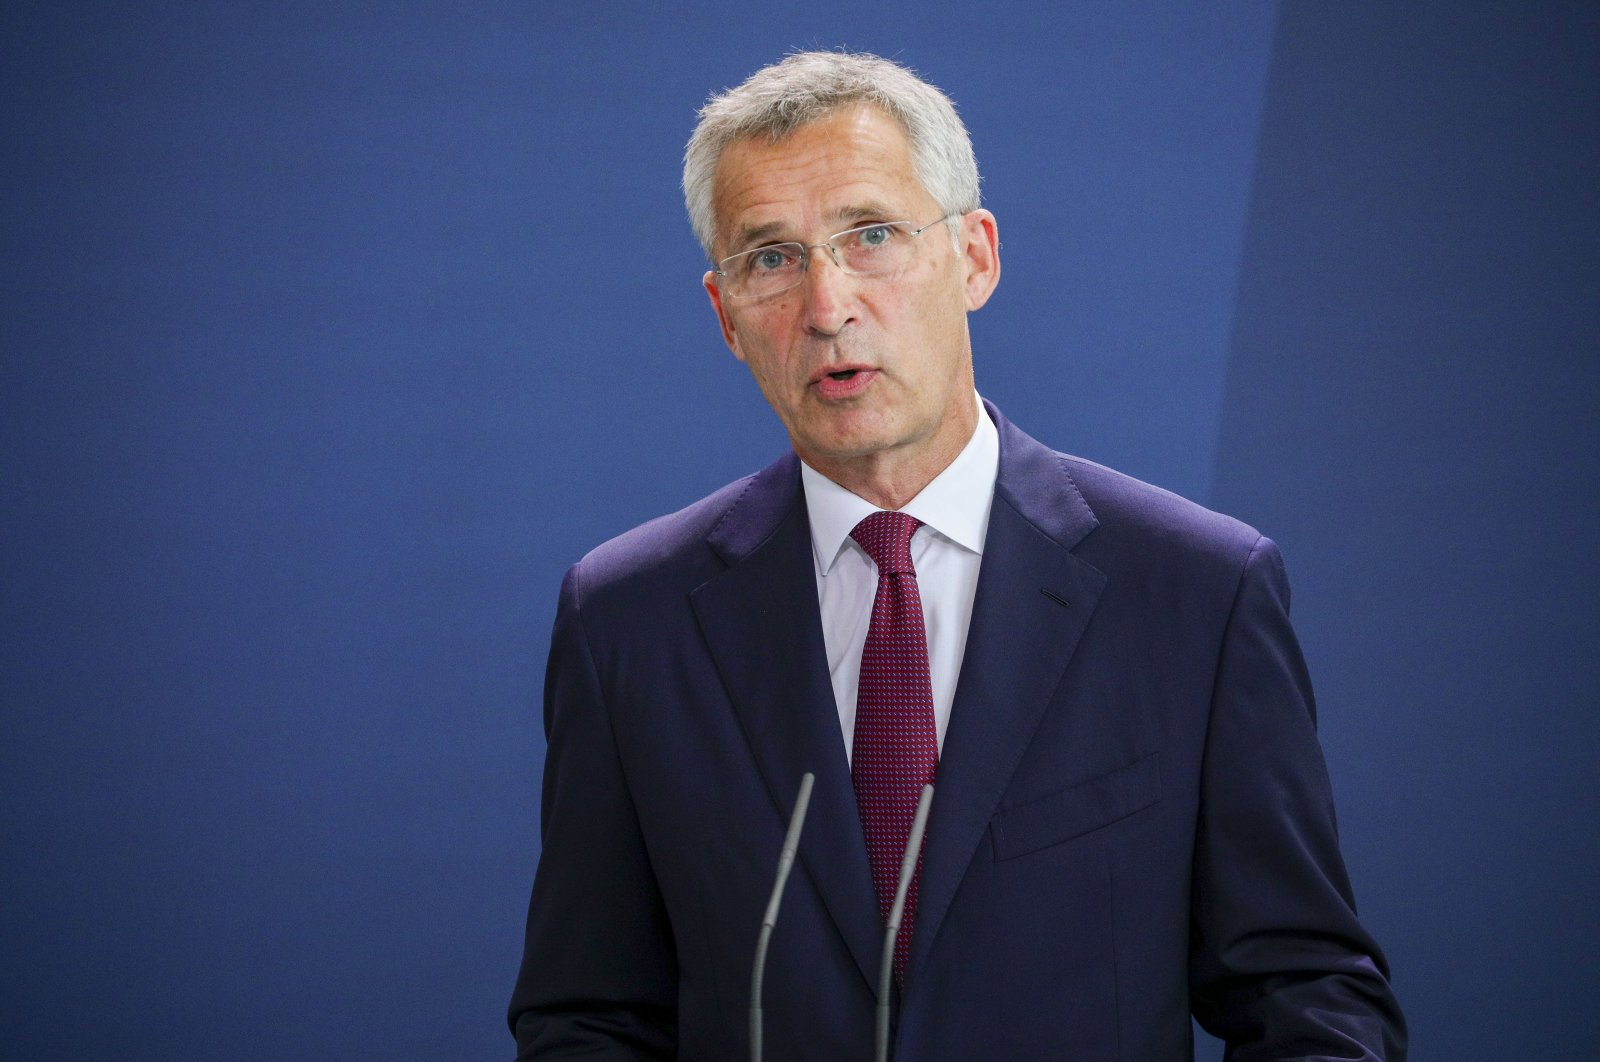 NATO Secretary-General Jens Stoltenberg speaks to the media prior to talks with German Chancellor Angela Merkel, at the Chancellery in Berlin, Germany, Aug. 27, 2020. (EPA-EFE)